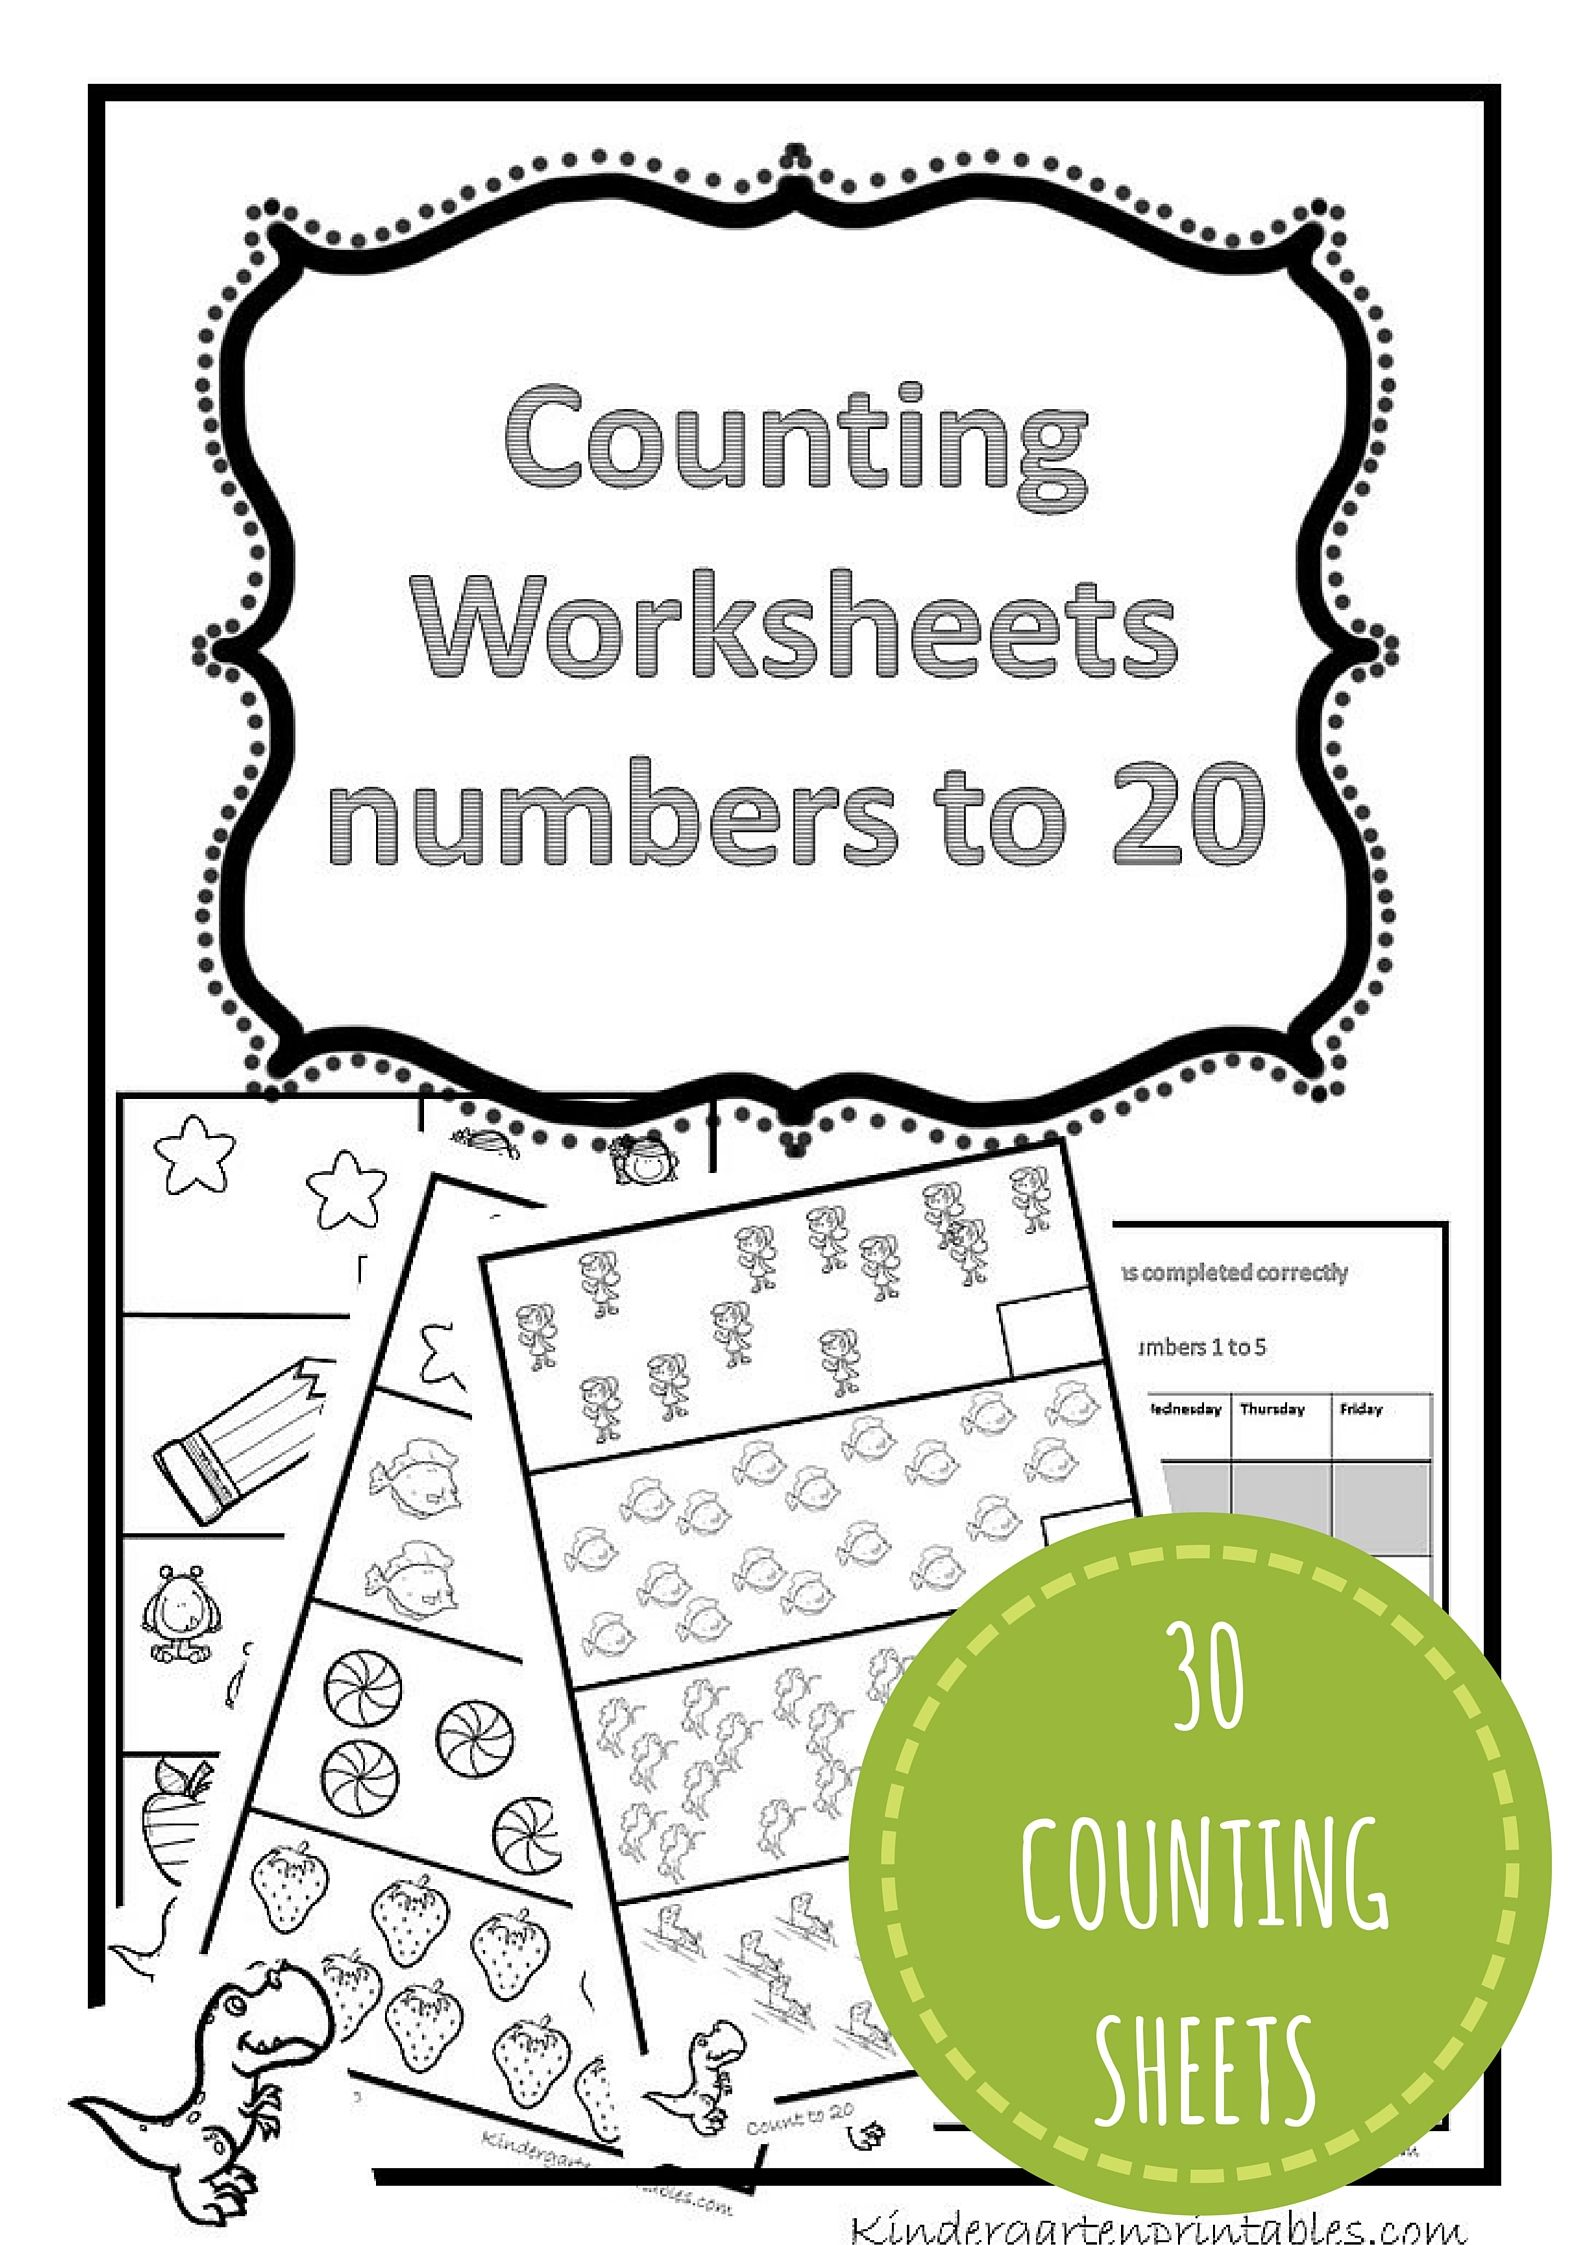 Counting Worksheets 1 20 Free Printable Workbook Counting Worksheets 1 20